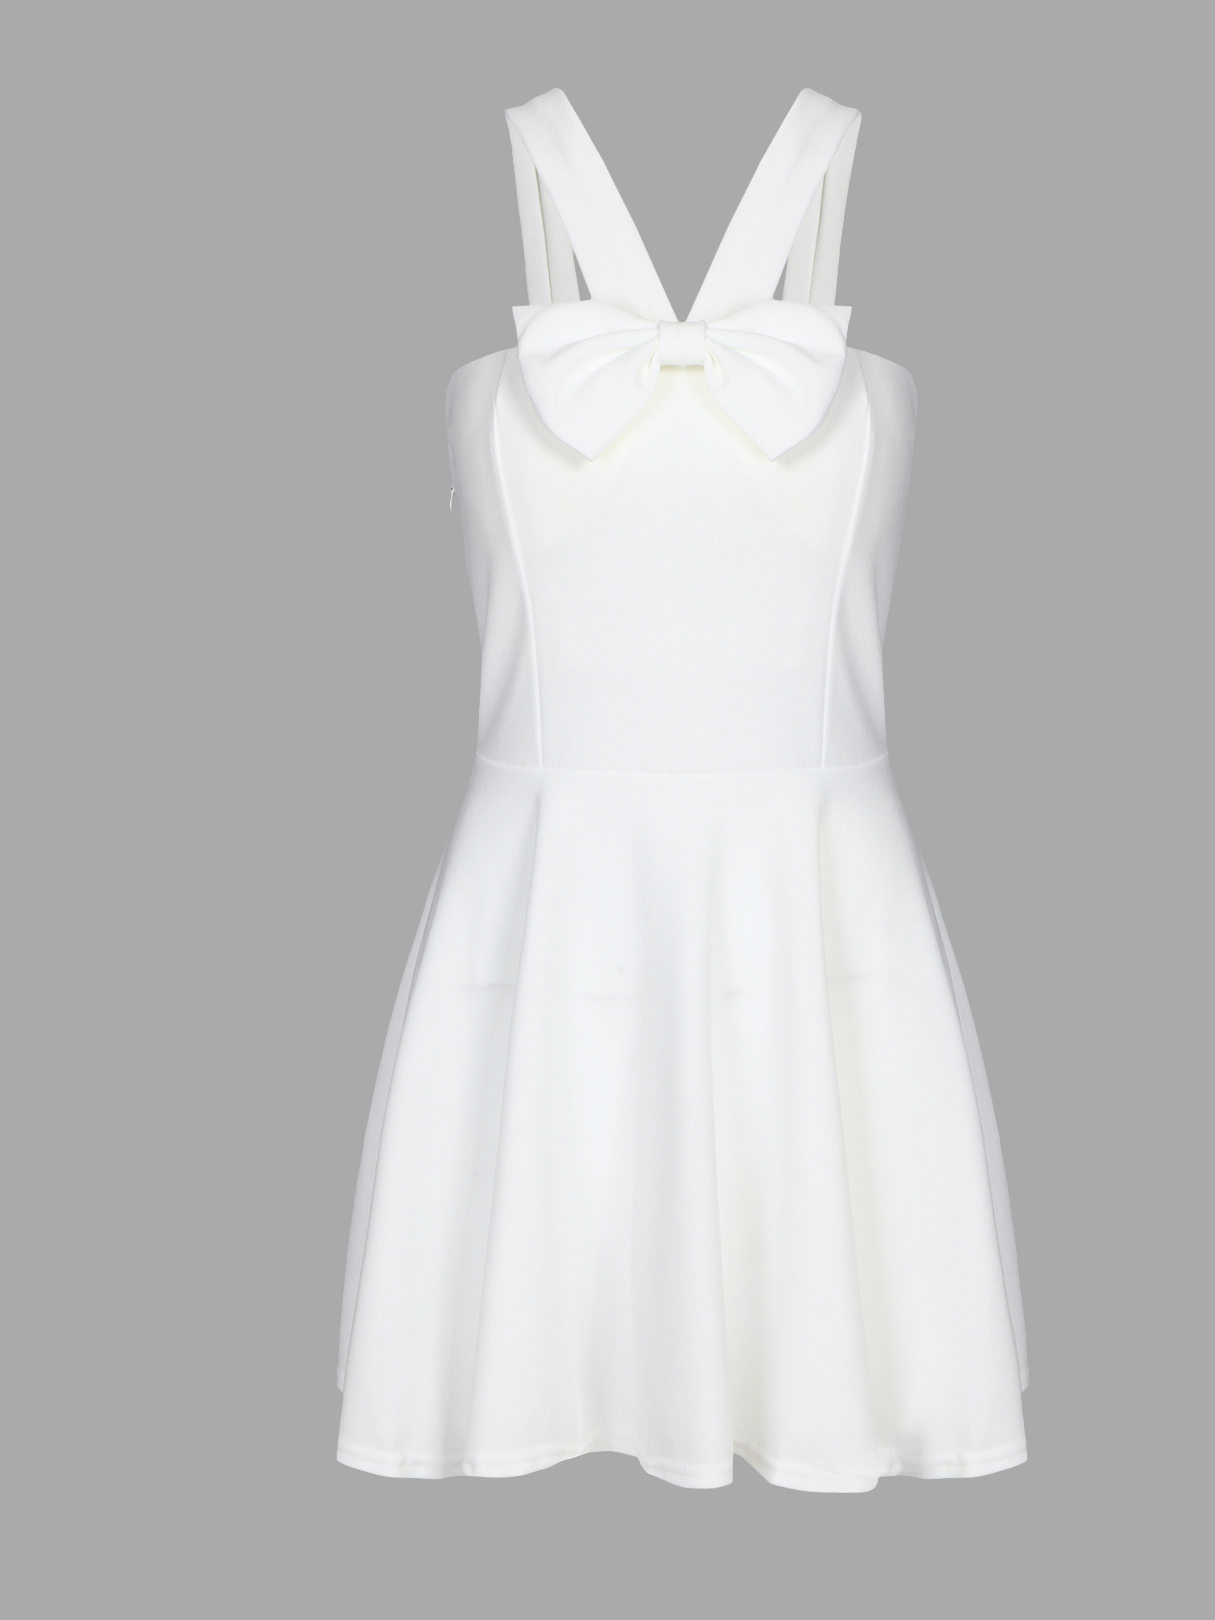 White Sexy Tube V-neck Bow Bodycon Mini Dress with Falsies sexy white lace hem lingerie with no falsies